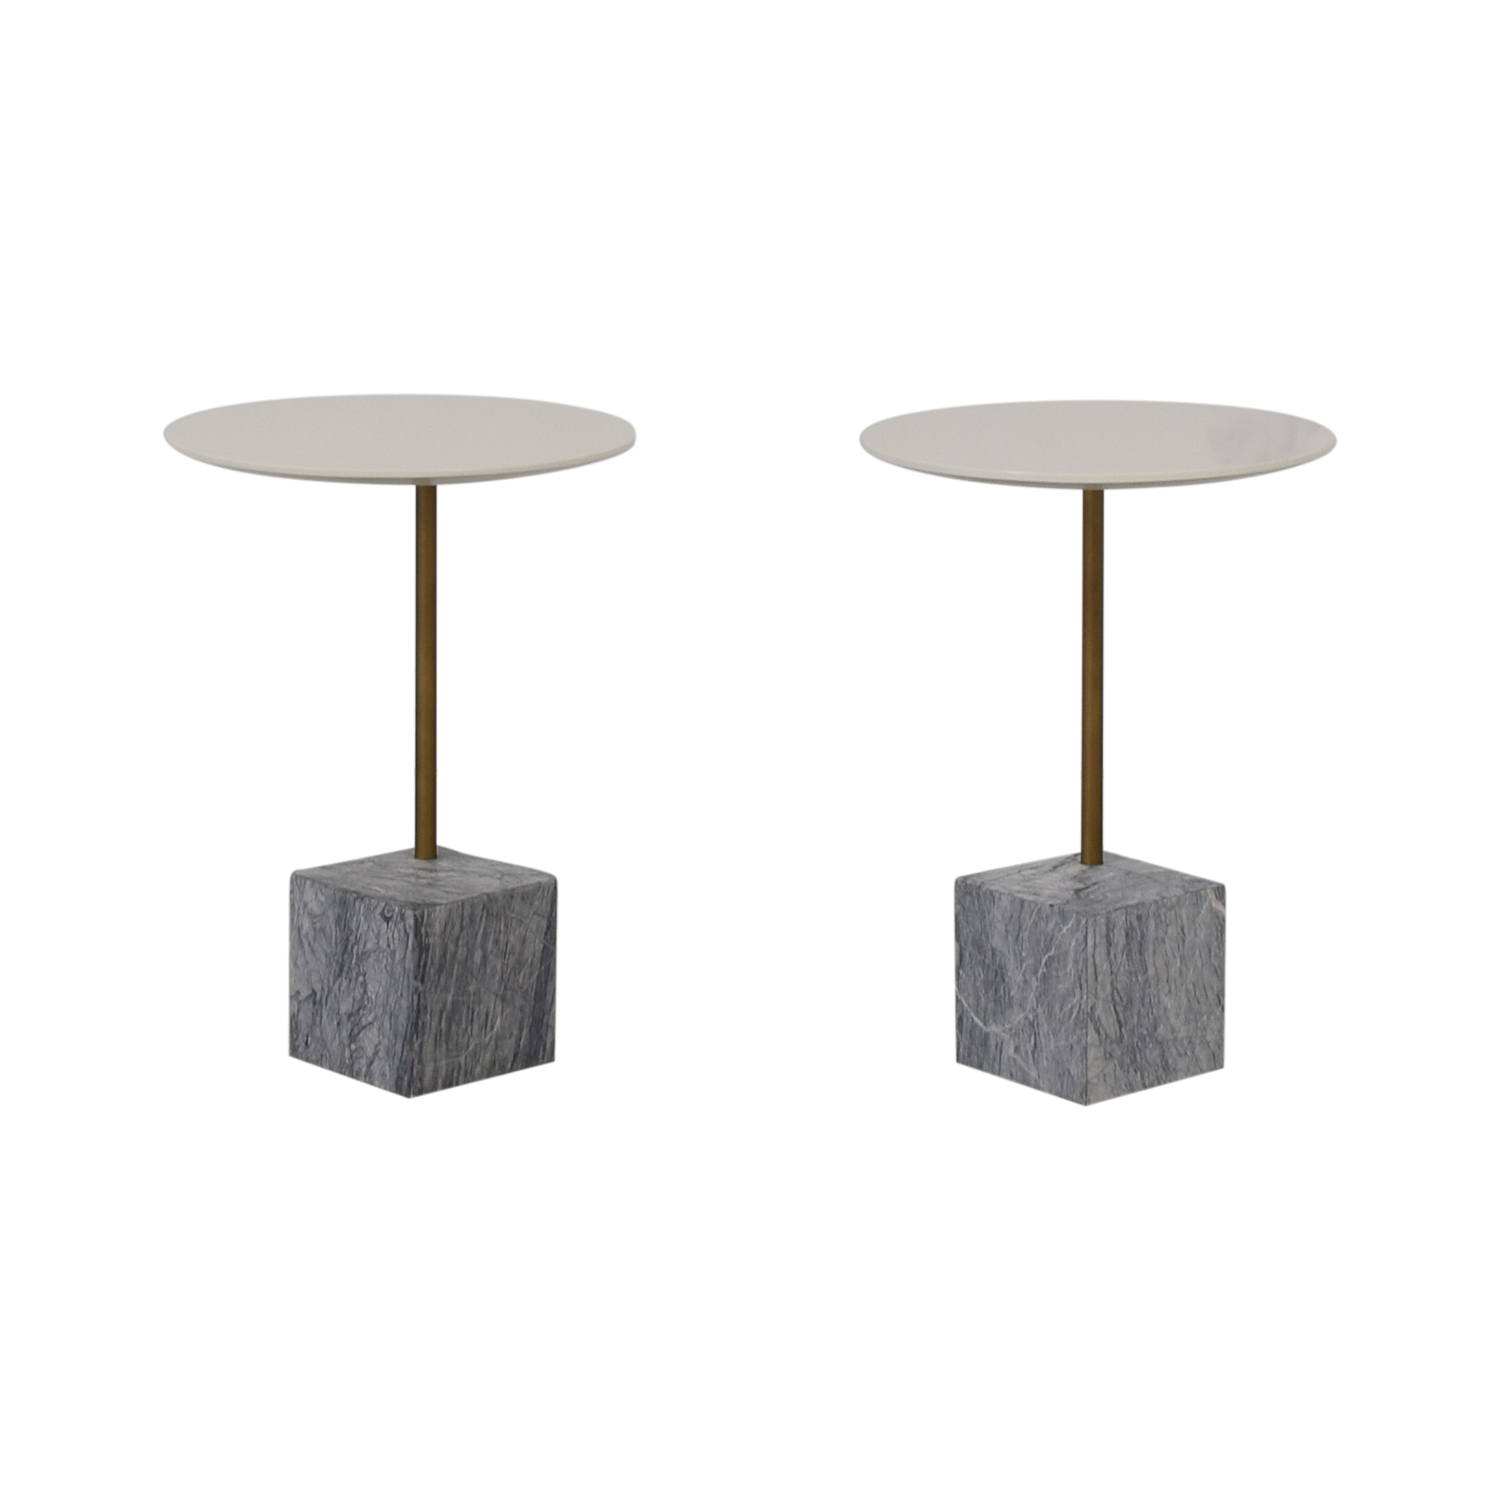 West Elm West Elm Cube C-Side Tables white and gray